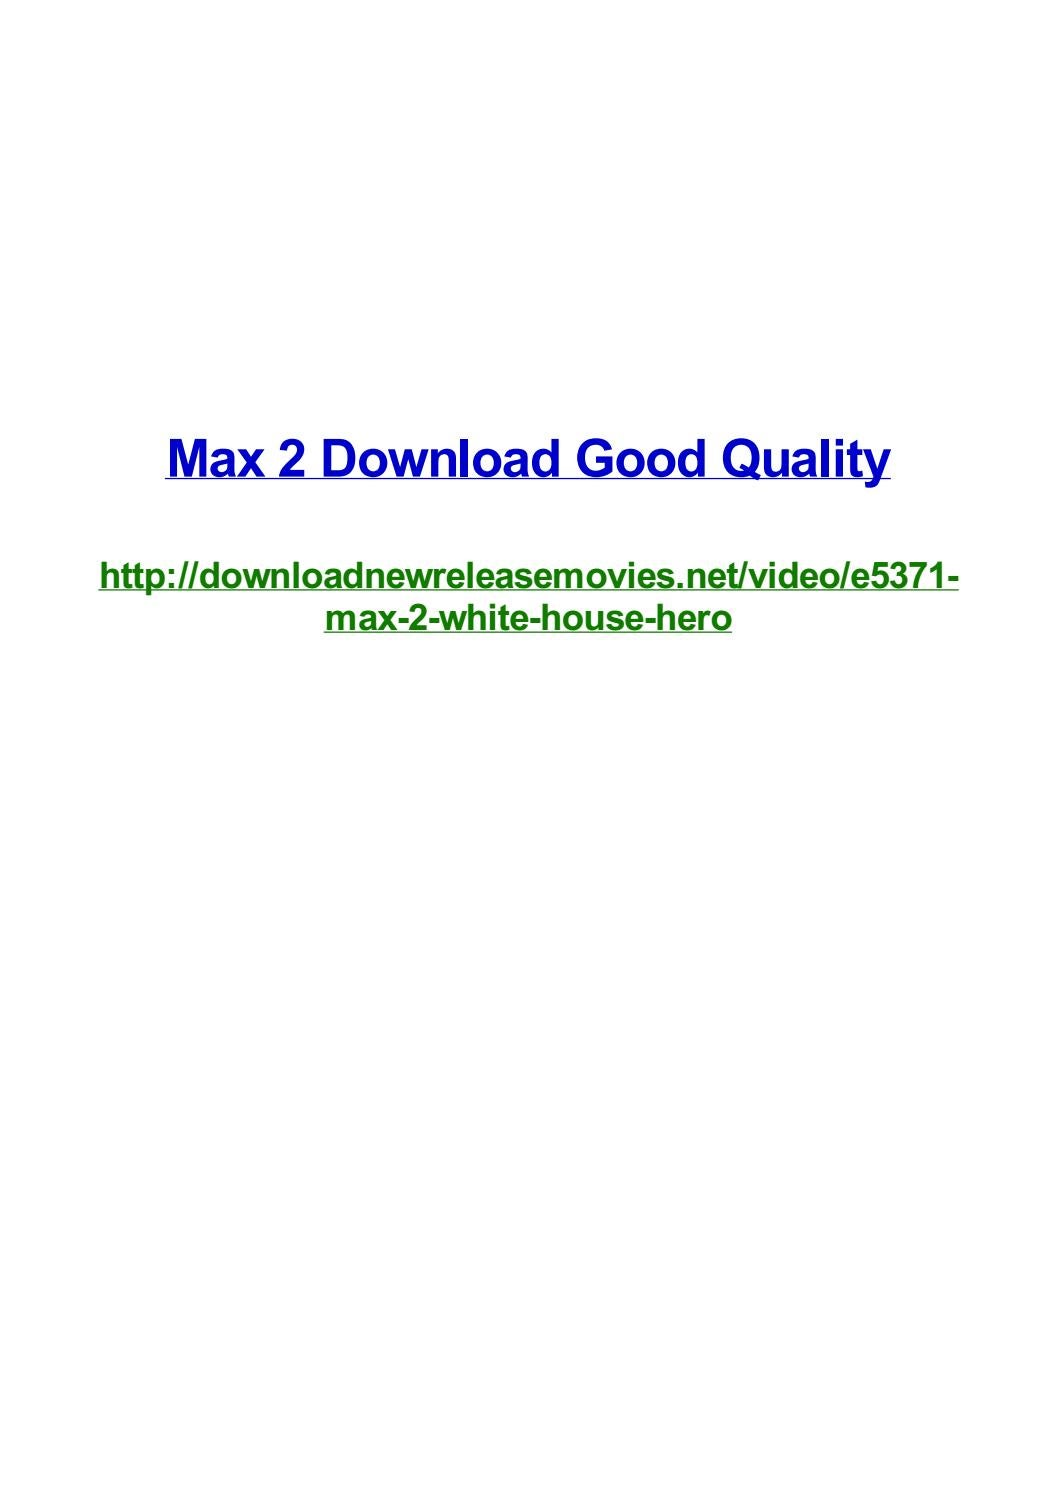 Max 2 download good quality